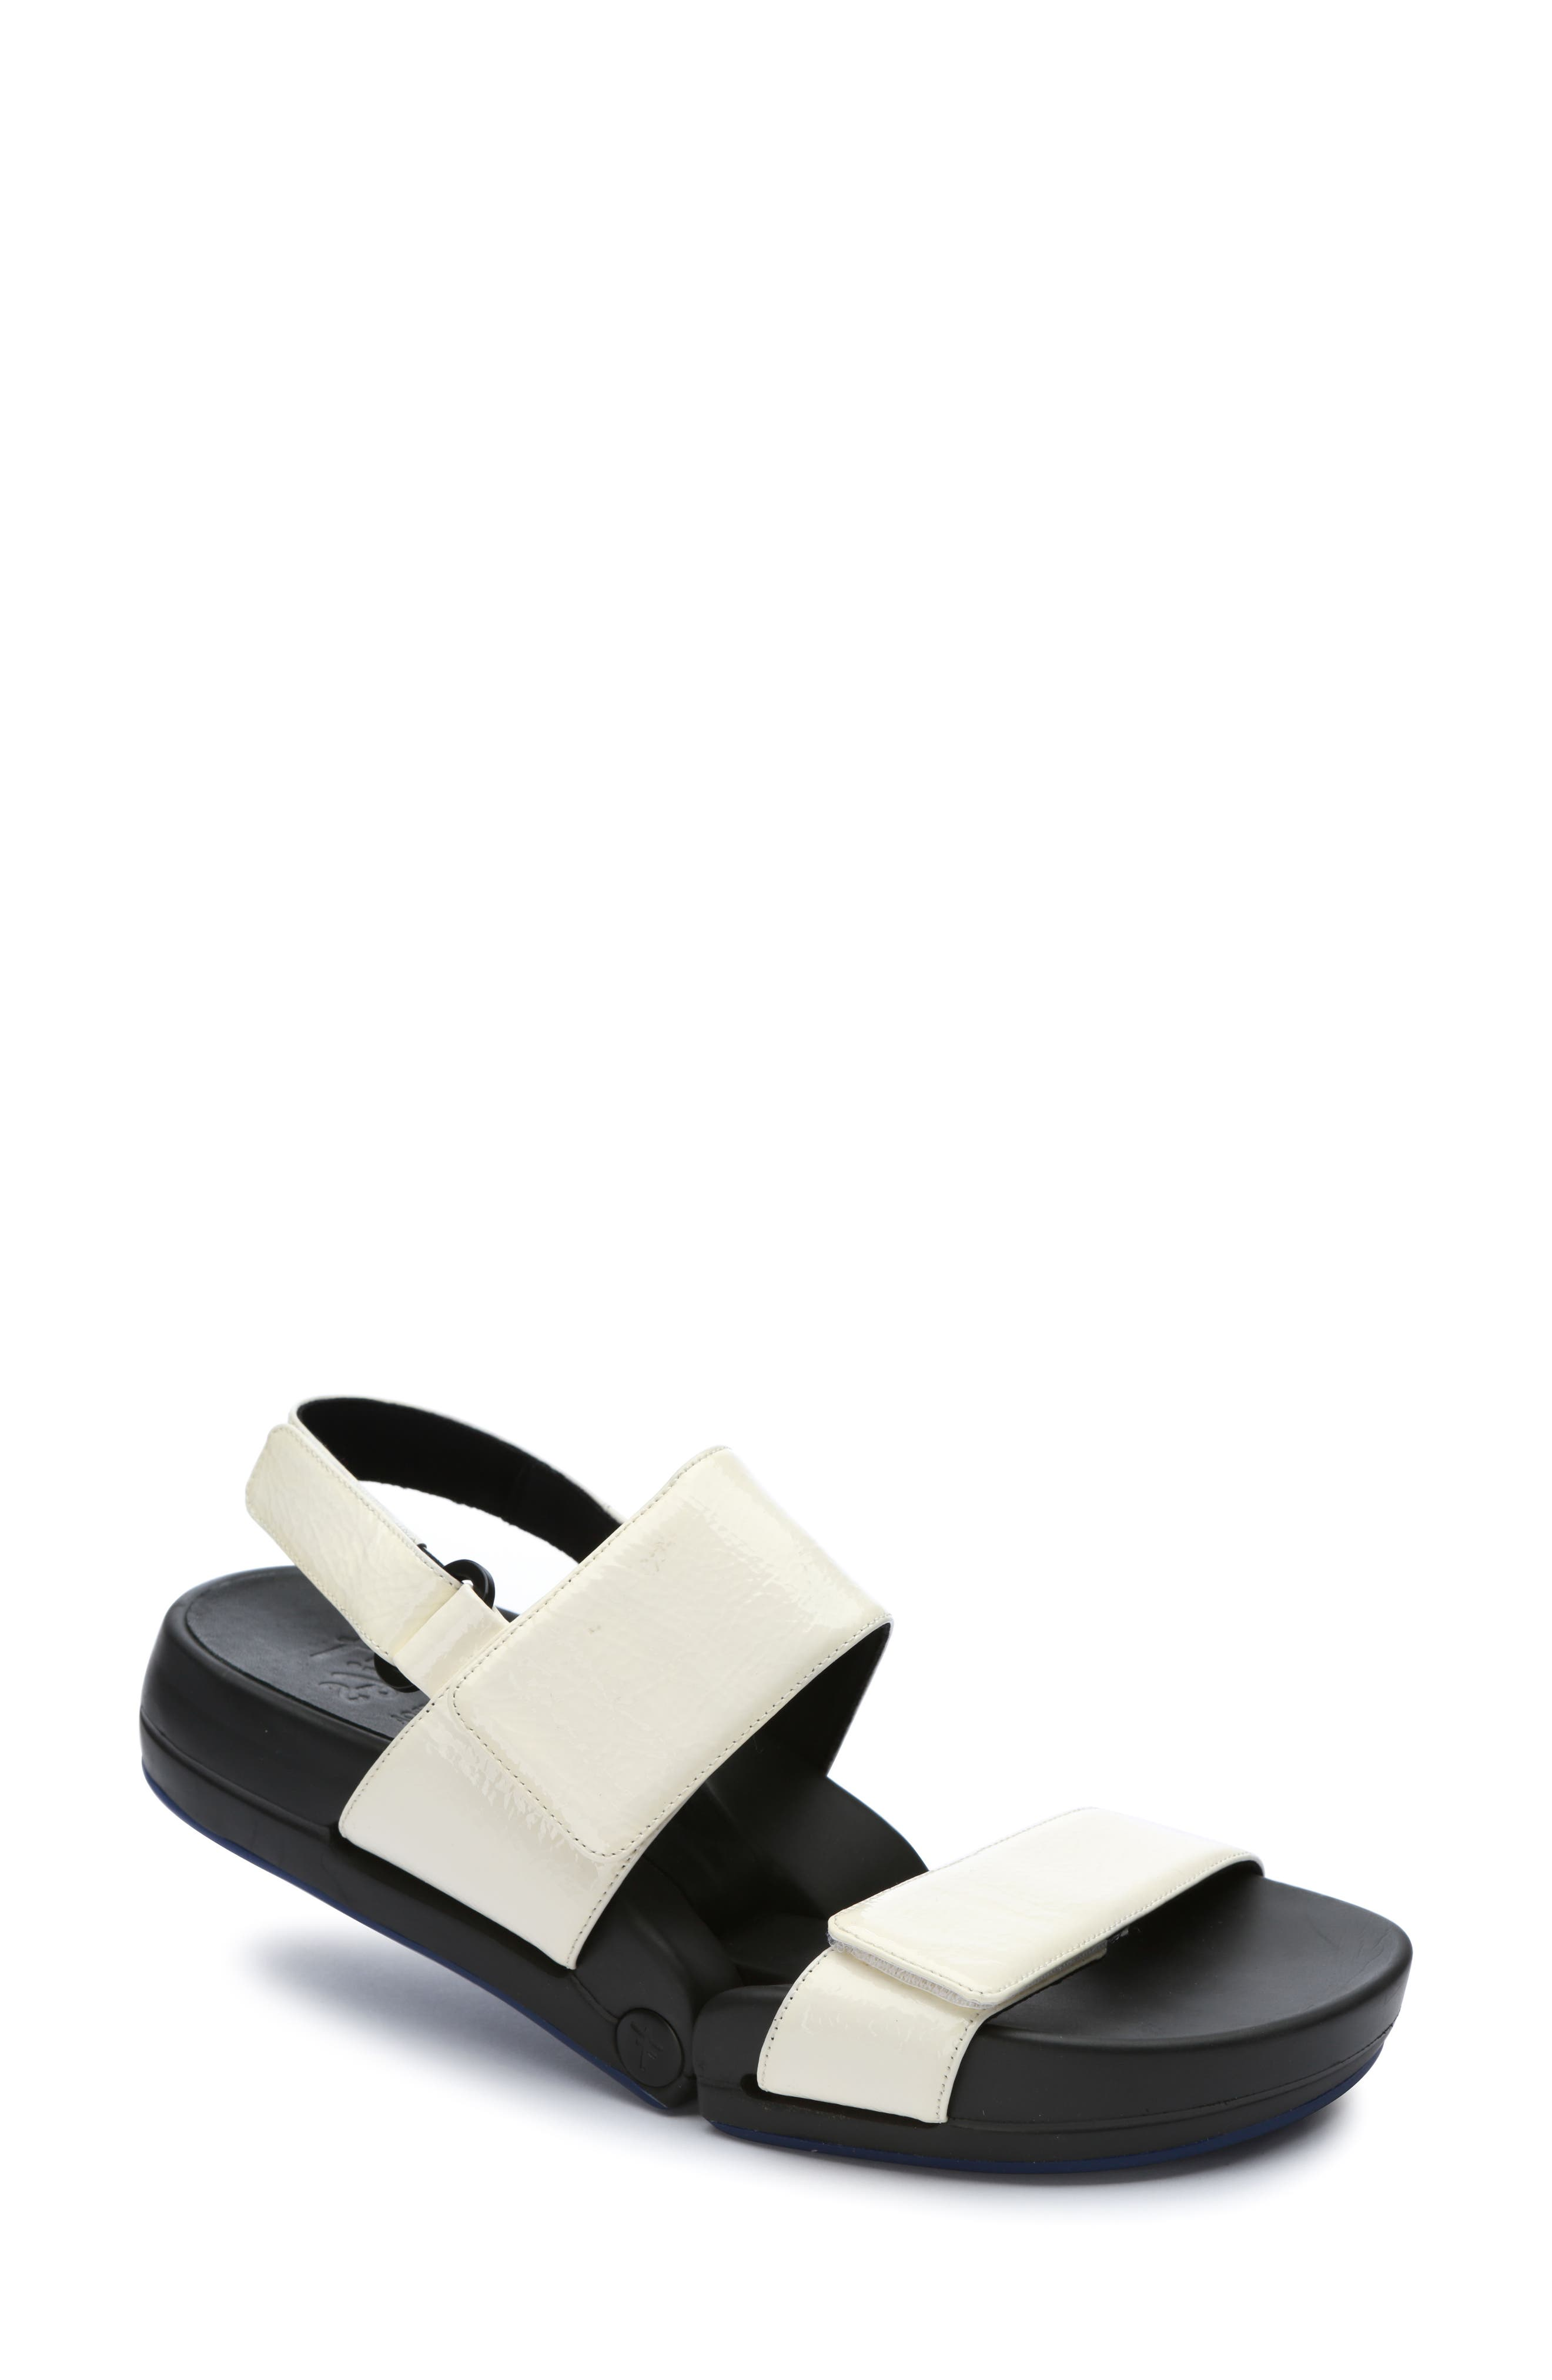 Figulous Sandal,                         Main,                         color, White Crinkle Patent Leather